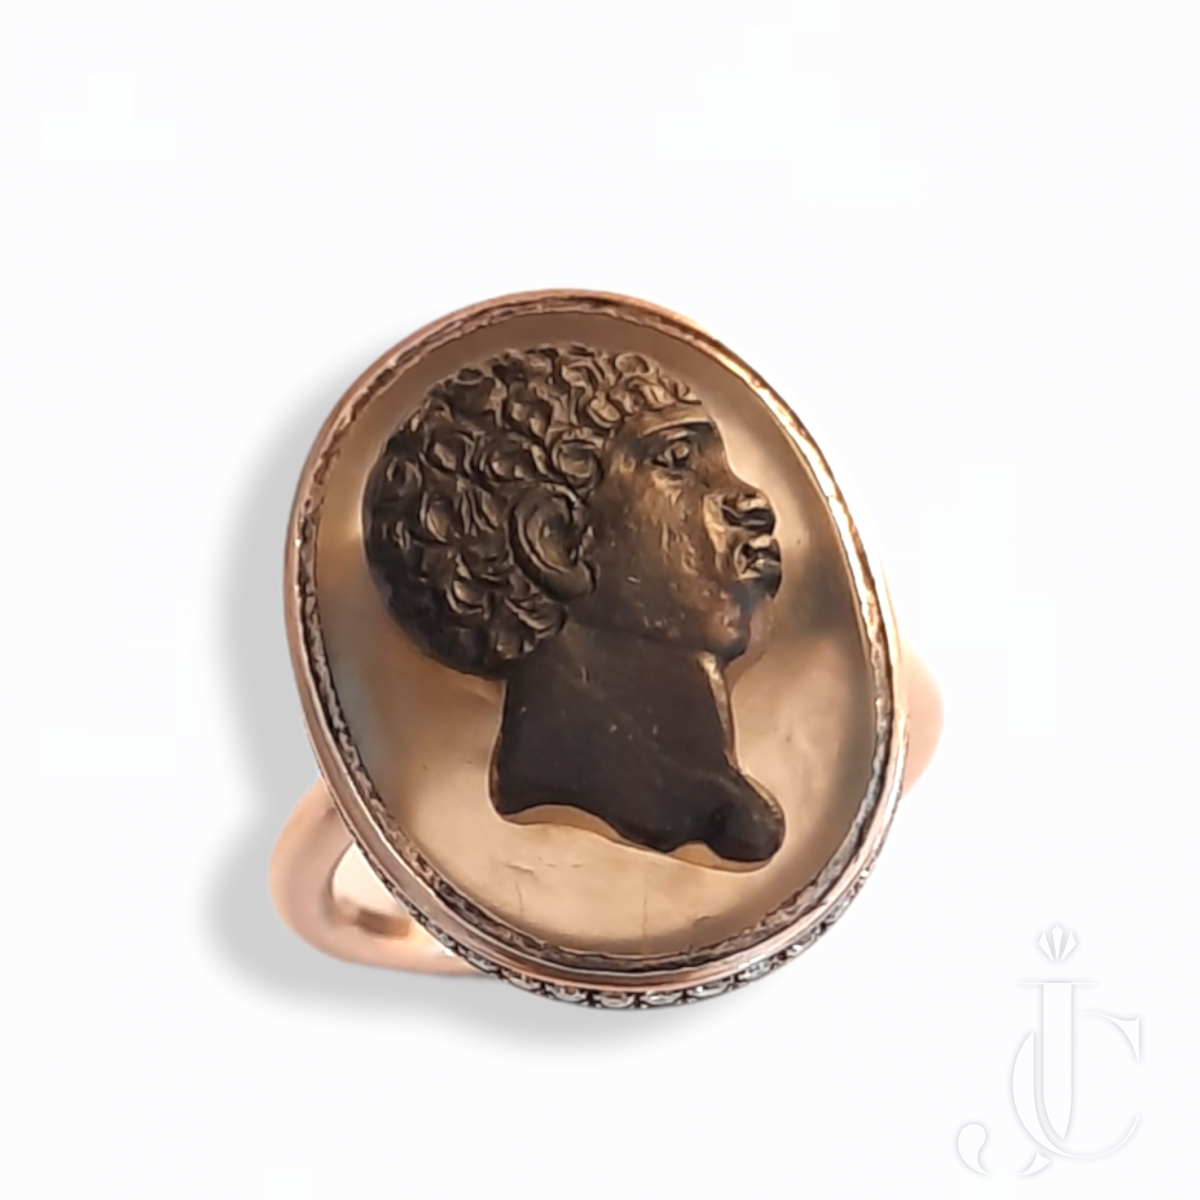 19th Century cameo in modern gold and diamond ring